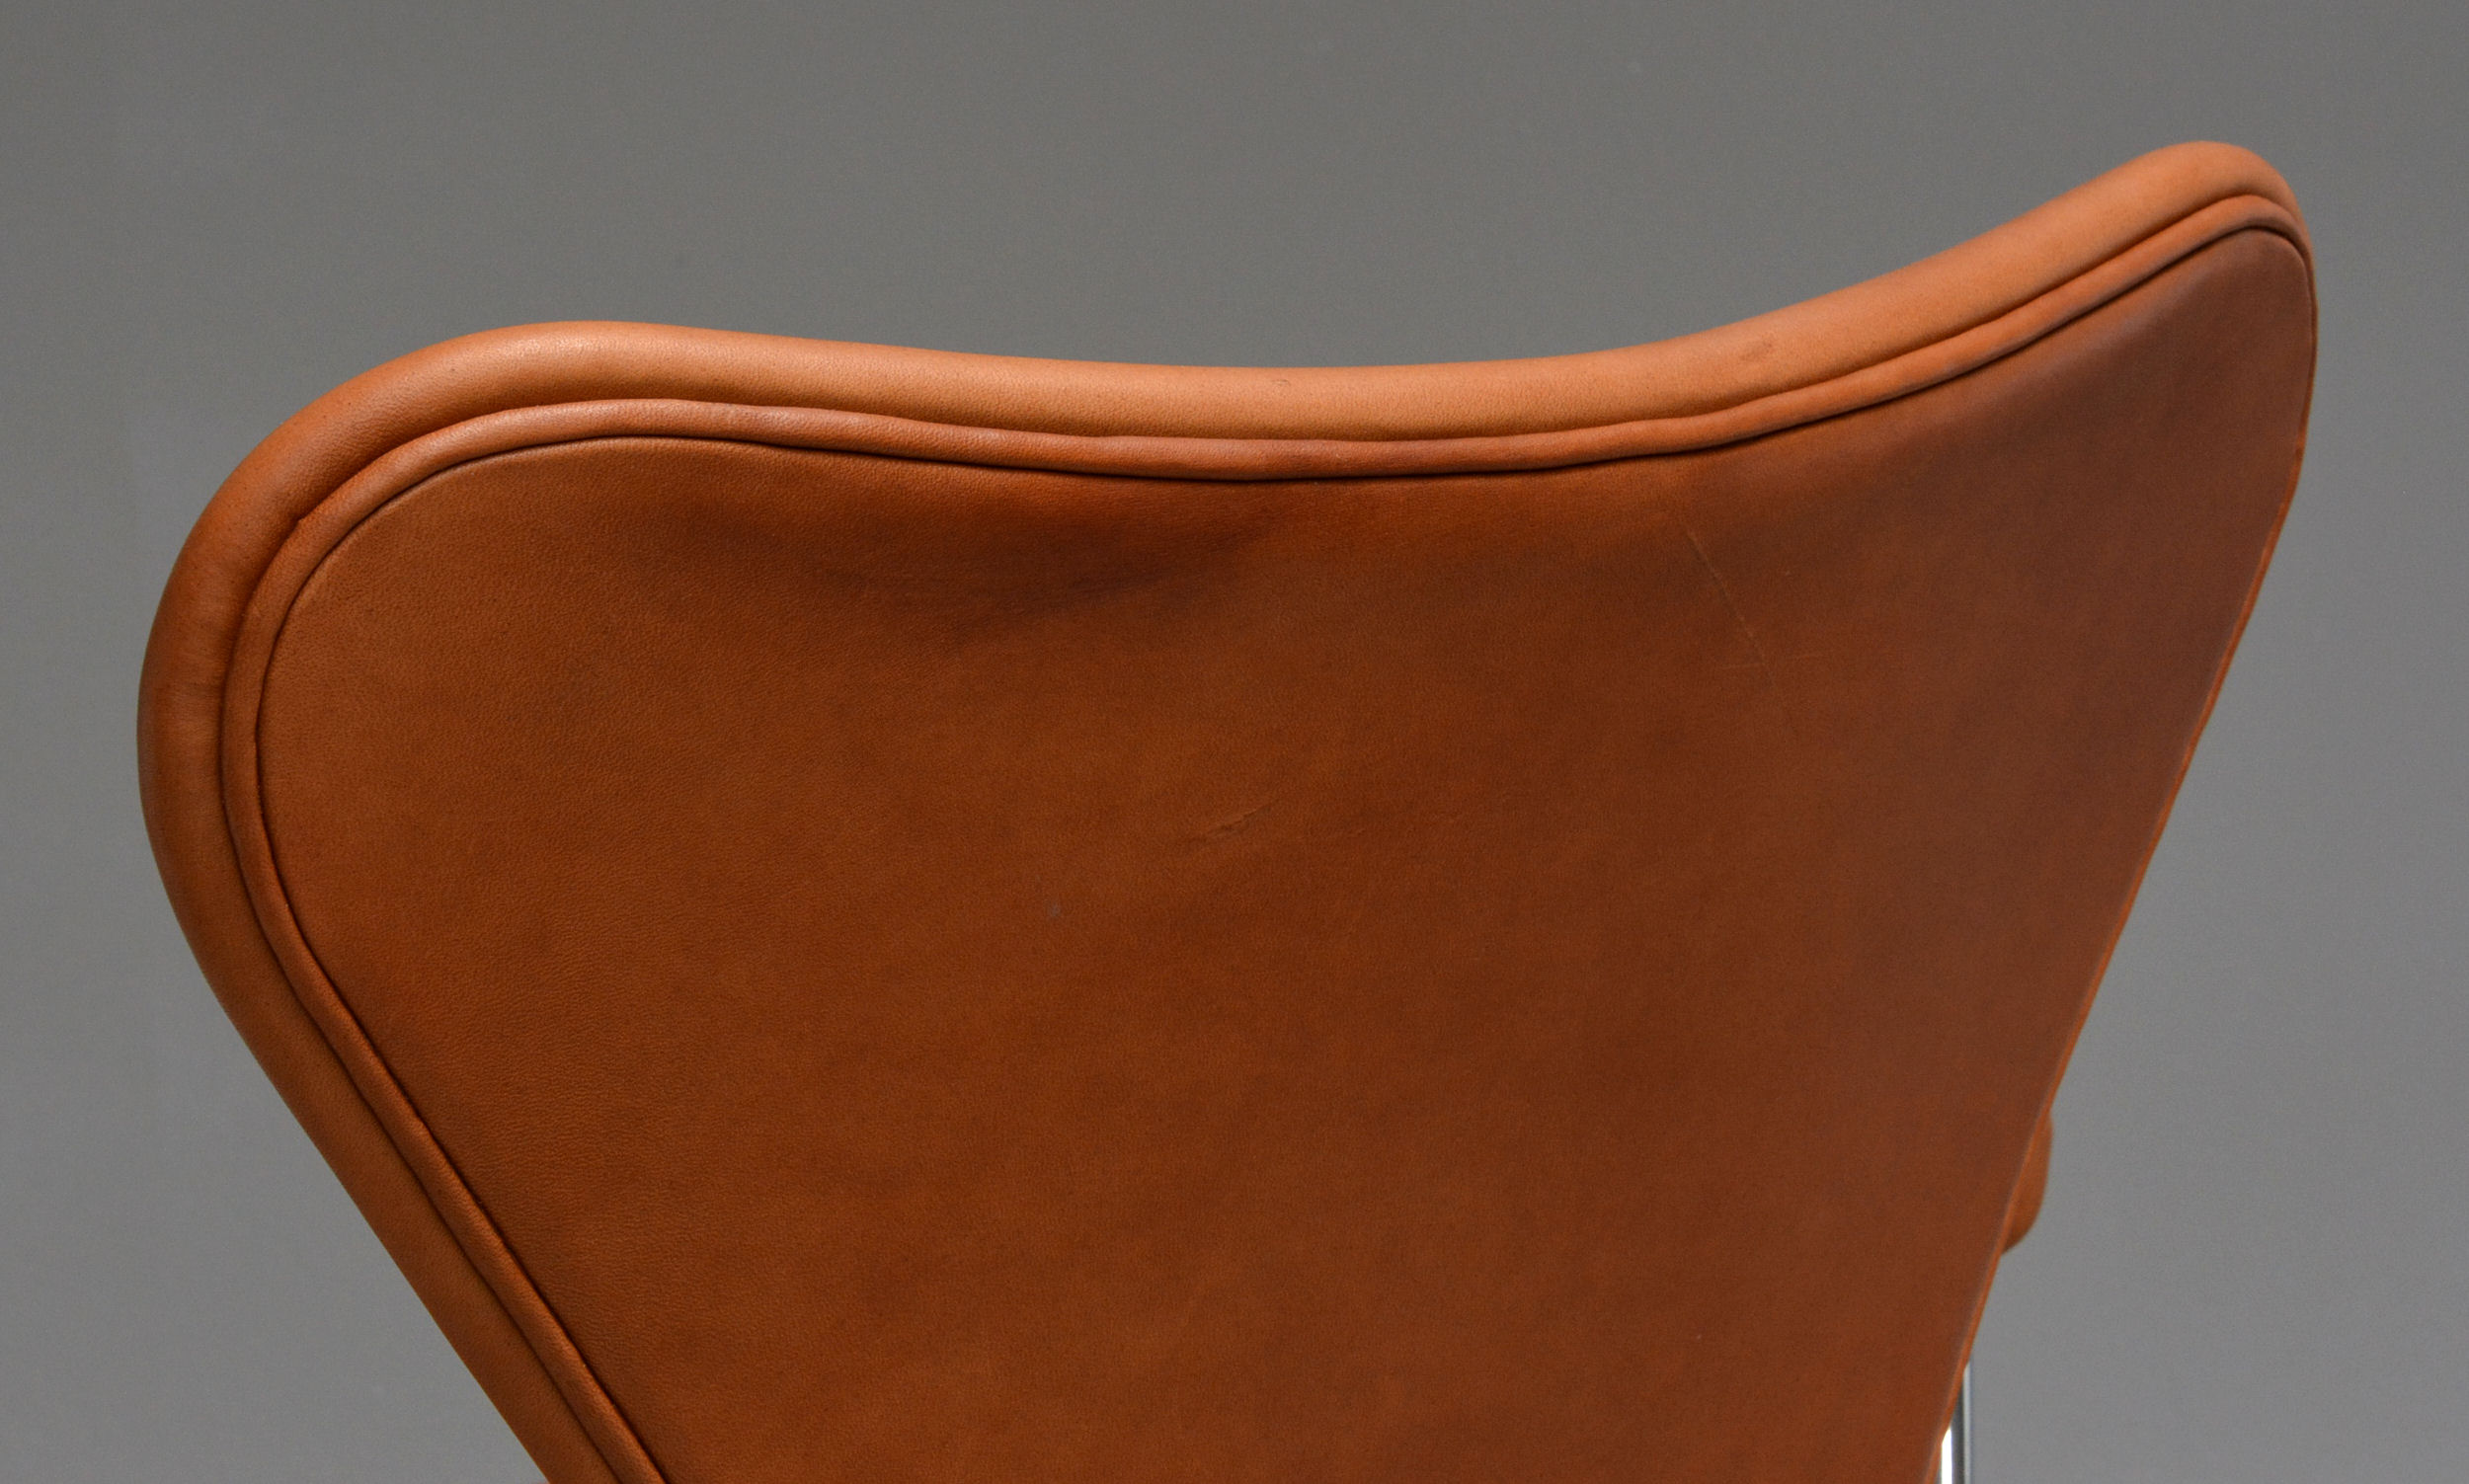 Arne Jacobsen. Office chair with armrests, model 3217, reupholstered in Vacona aniline leather